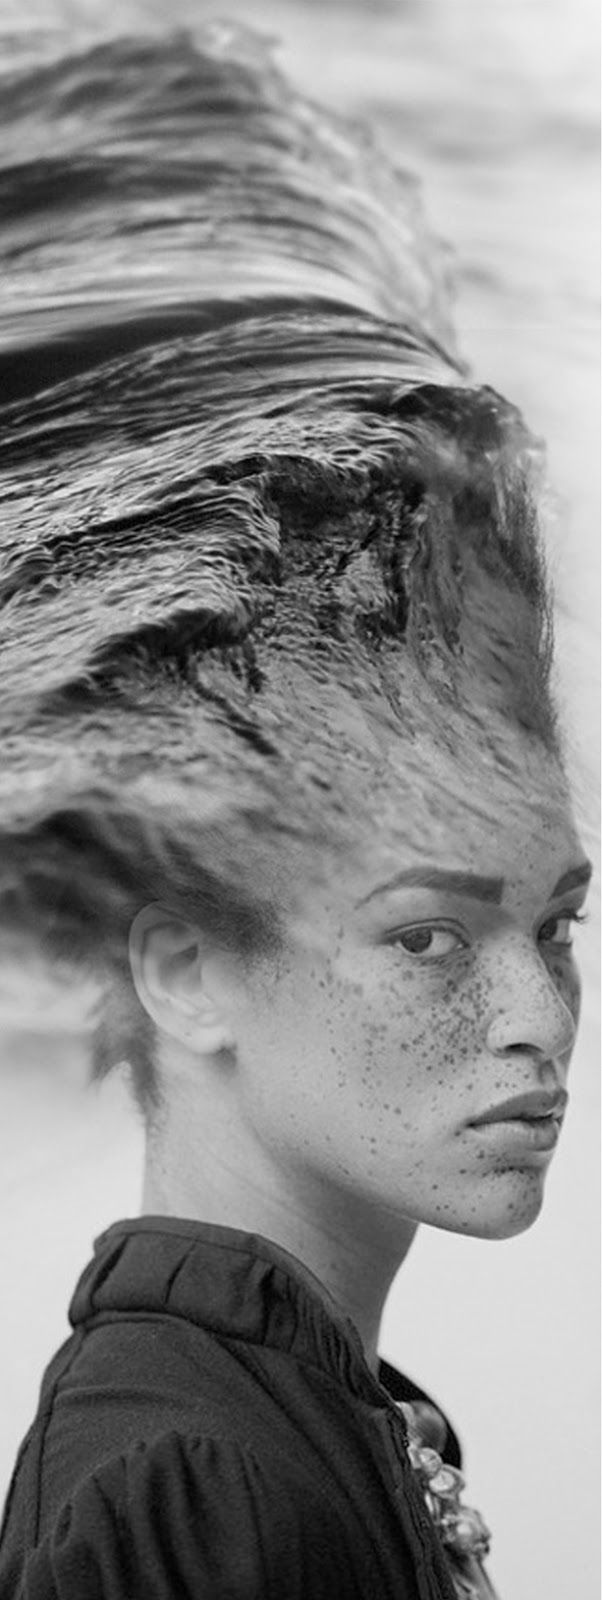 ANTONIO MORA - Pursuer of Dreams, Fantasies Creator - This is Art